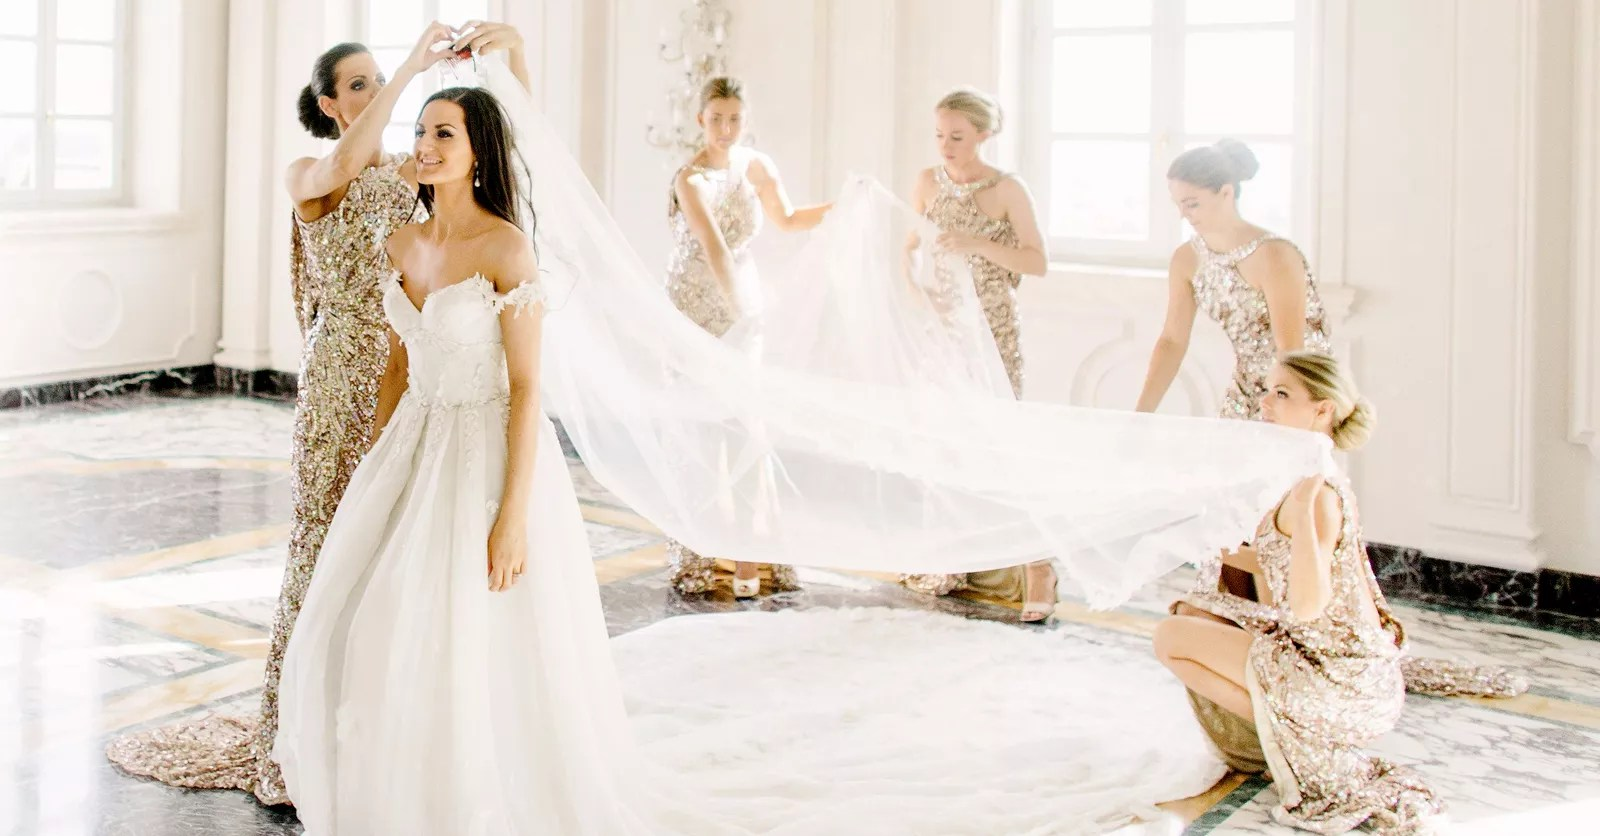 This Was The Average Cost Of A Wedding Dress In 2018